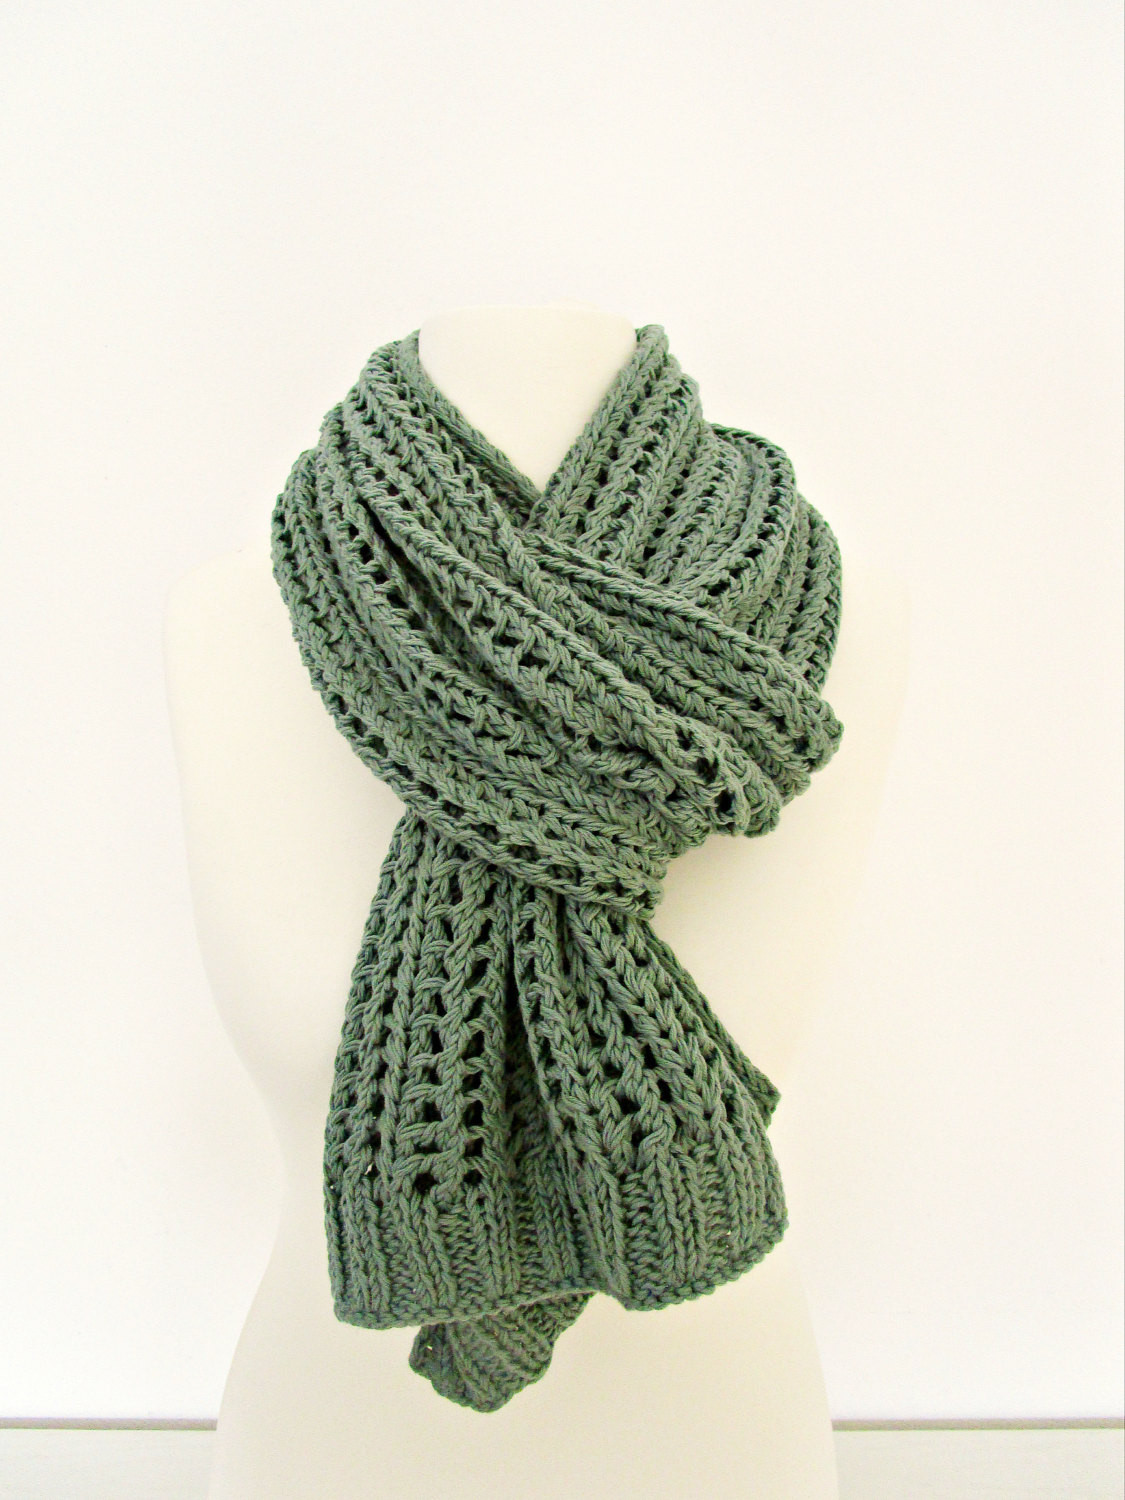 New Knit Womens Scarf Lace Knit Scarf Green Knit Scarf Cotton Knit Lace Knit Scarf Of Delightful 46 Images Lace Knit Scarf